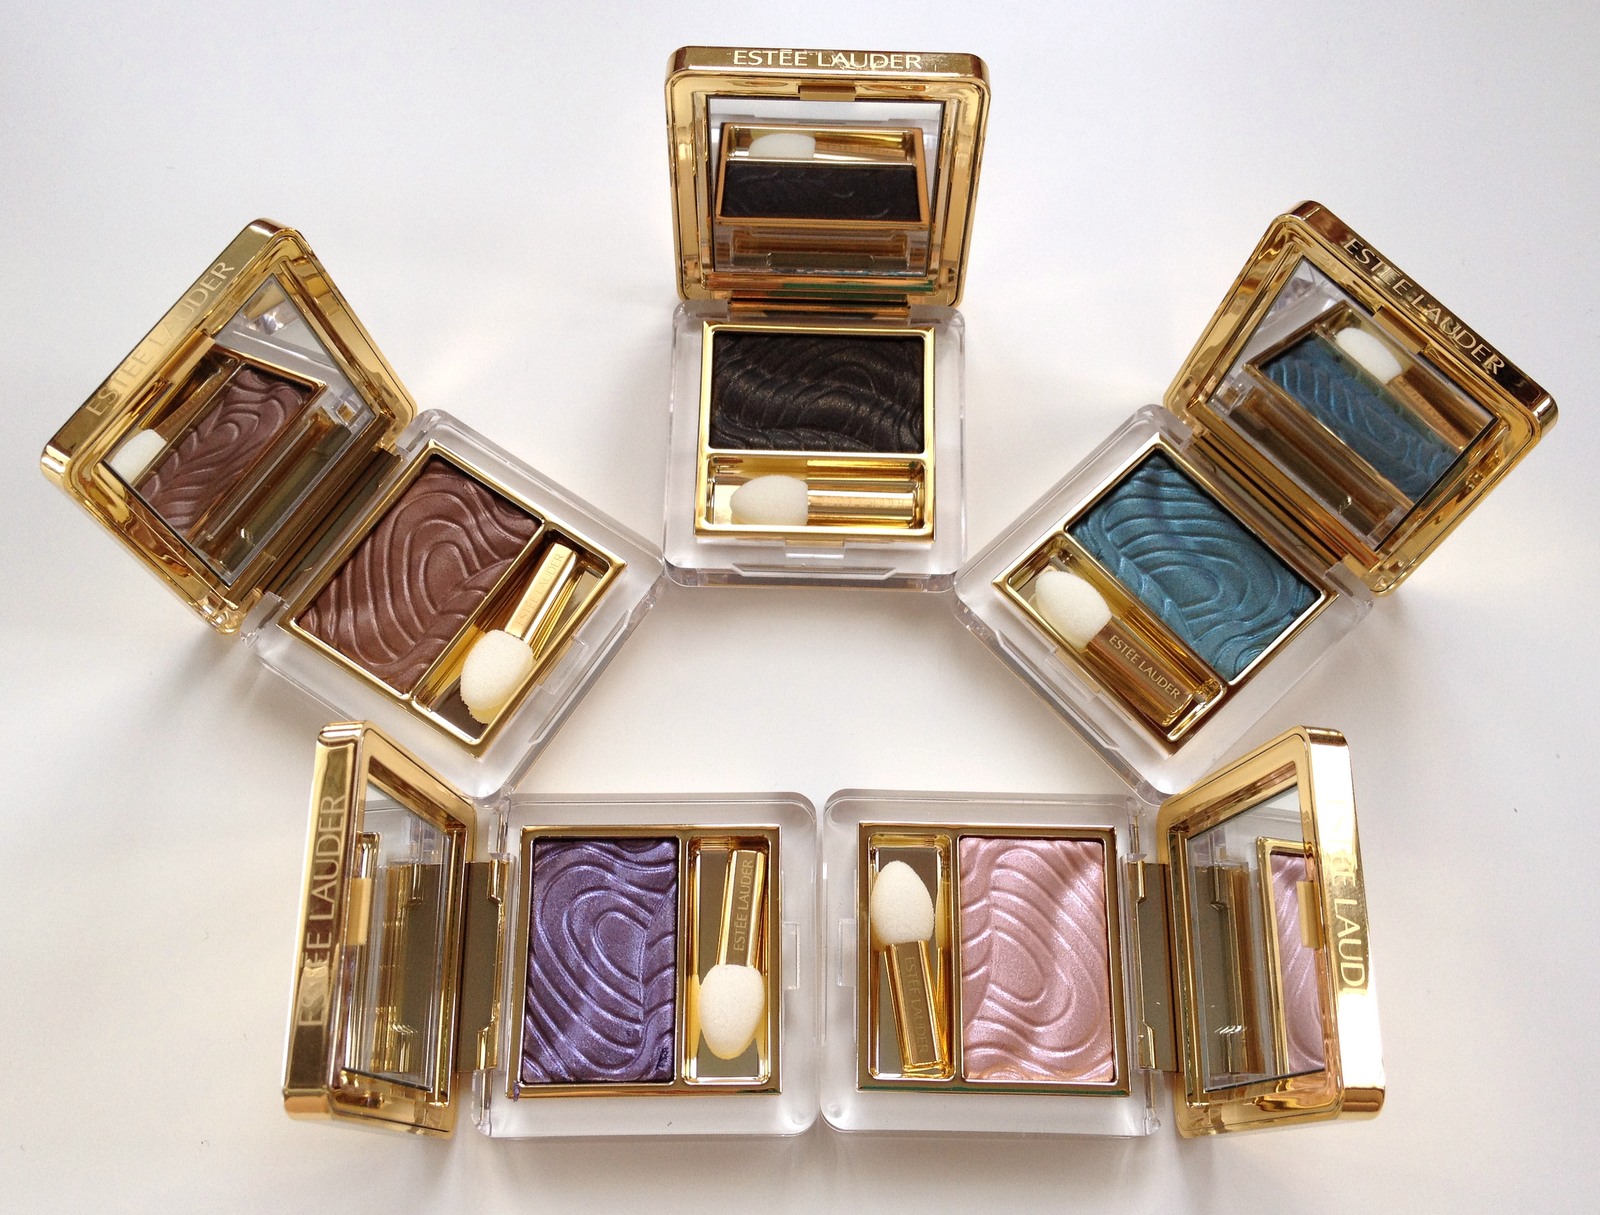 Metallic Eye make-up. Pure Color Gelée Powder Eye Schadow van Estee Lauder